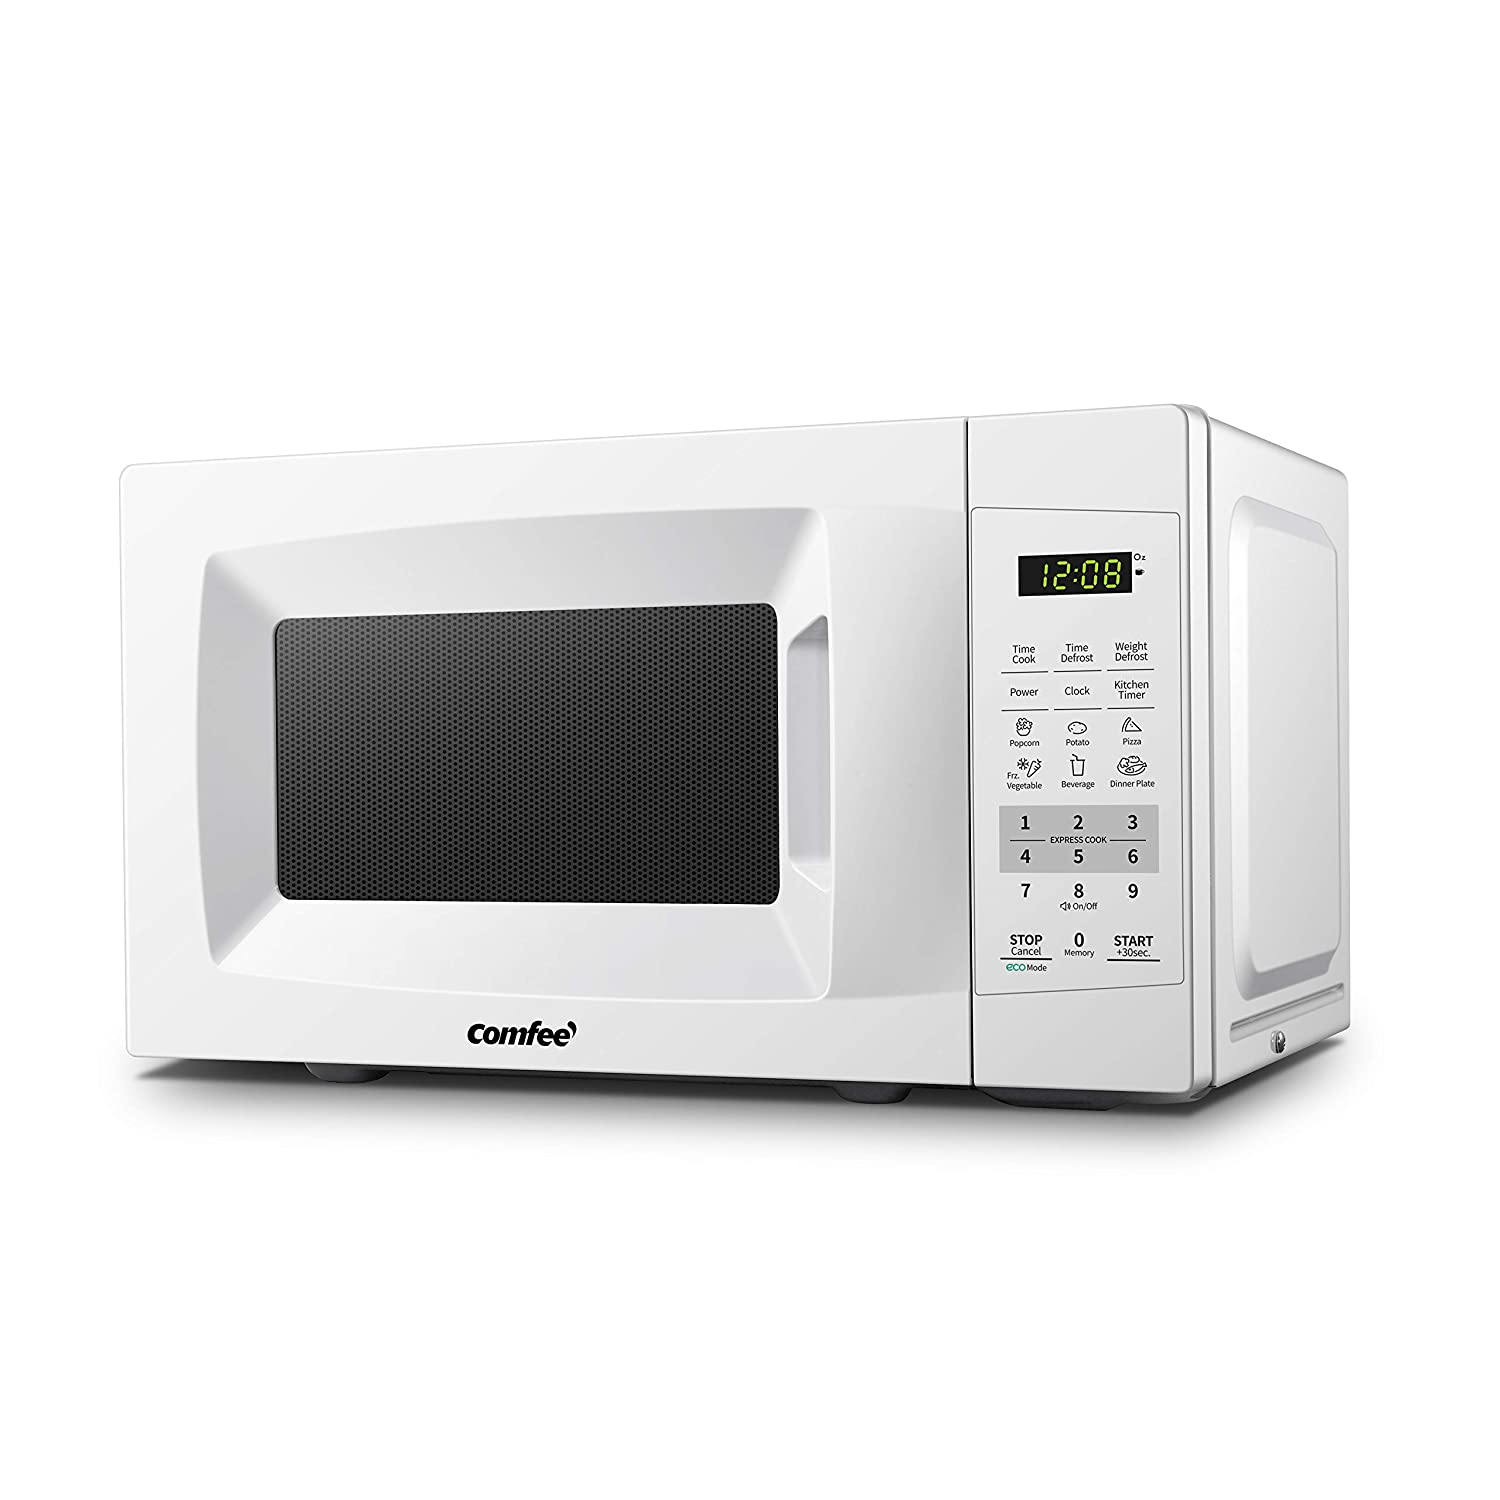 Comfee EM720CPL-PM Countertop Microwave Oven with Sound On/Off, ECO Mode and Easy One-Touch Buttons 0.7Cu.Ft/700W Pearl White